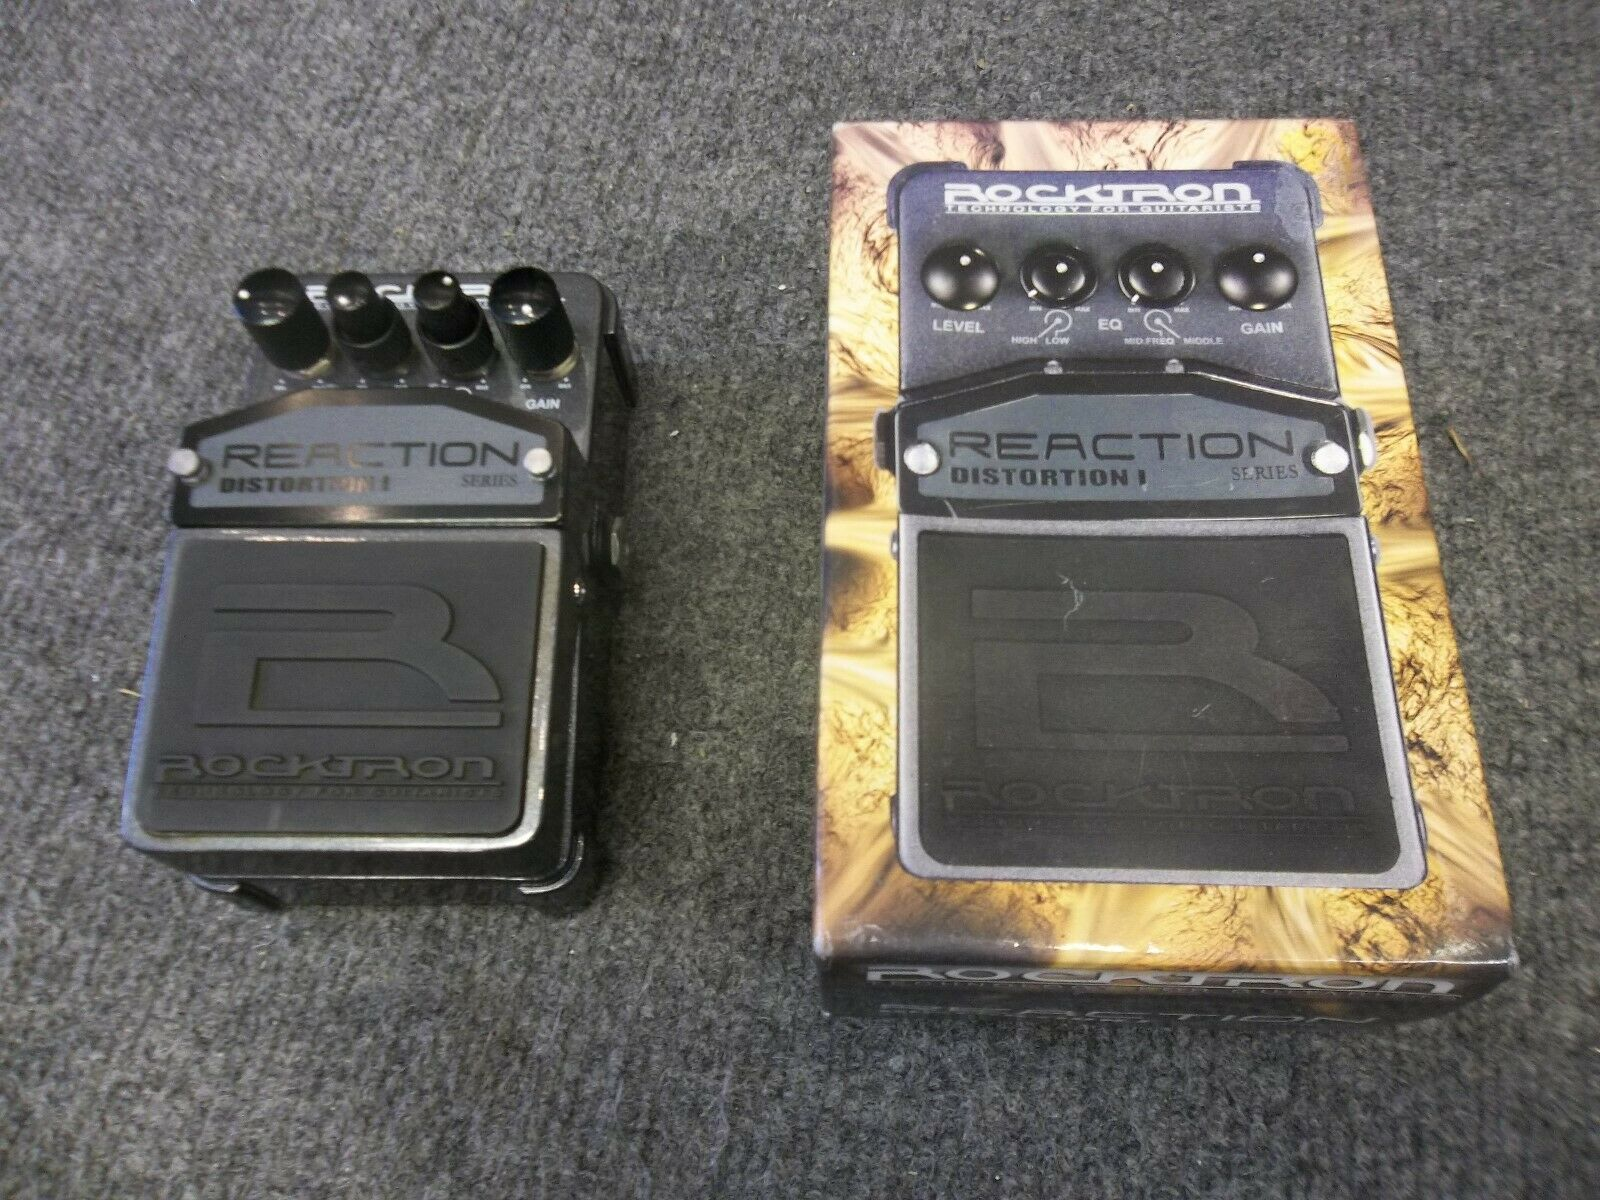 Rocktron Reaction Distortion 1. Boxed. Fast free secure shipping!